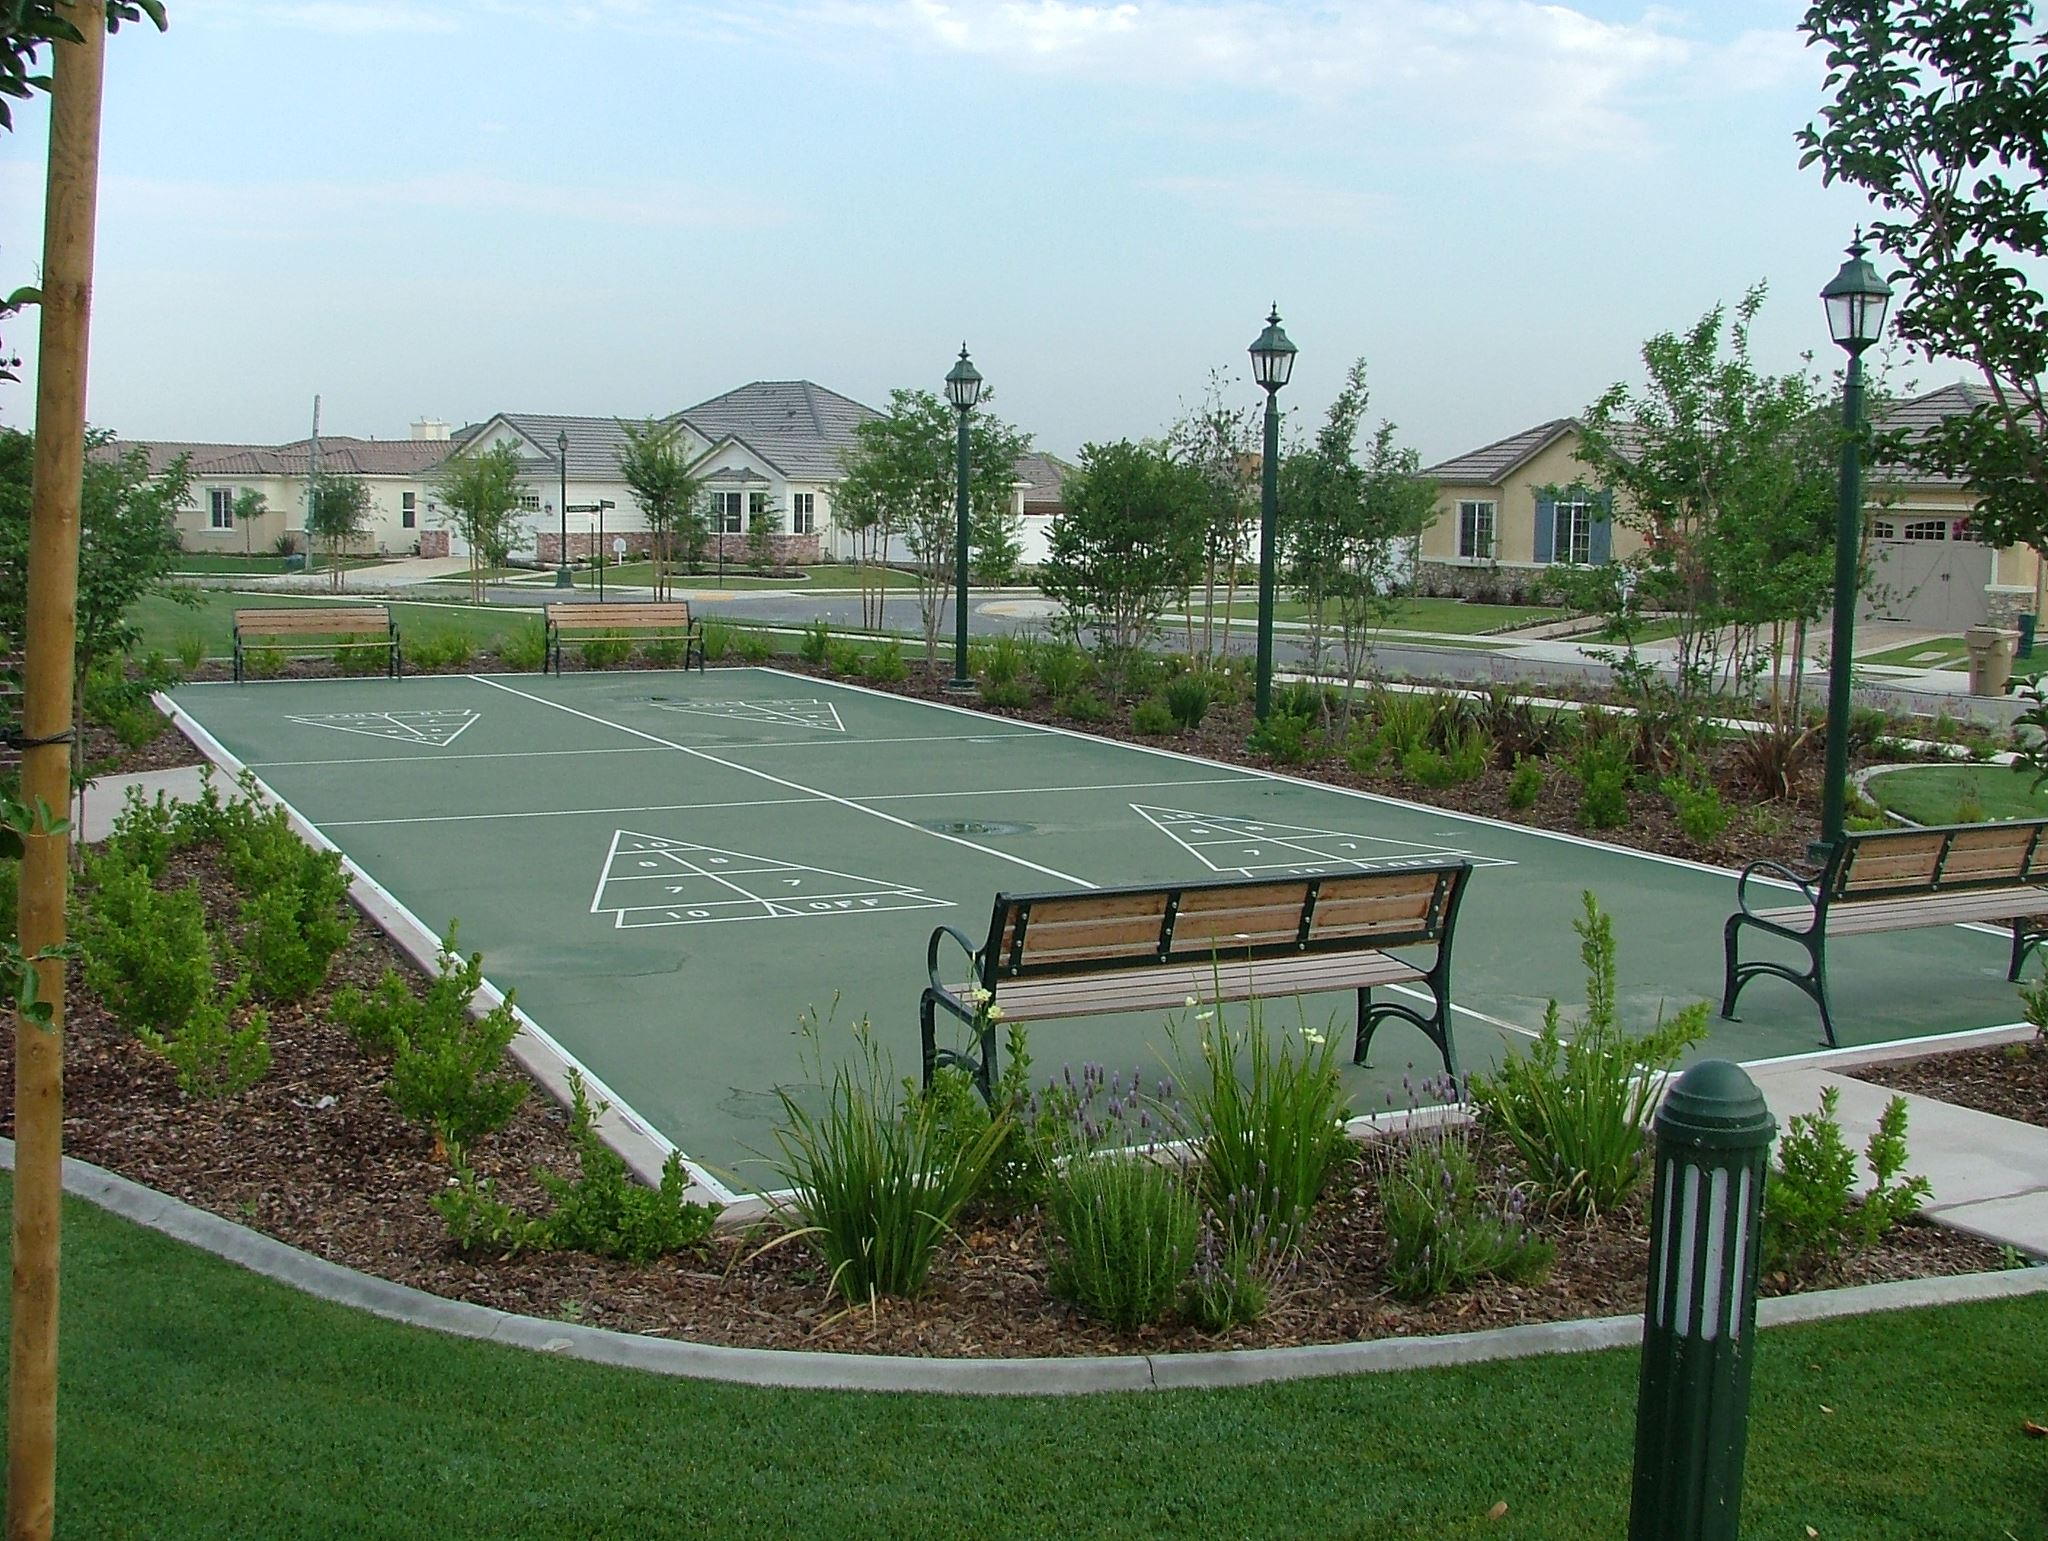 public park sport courts by Courts and Greens in Bakersfield